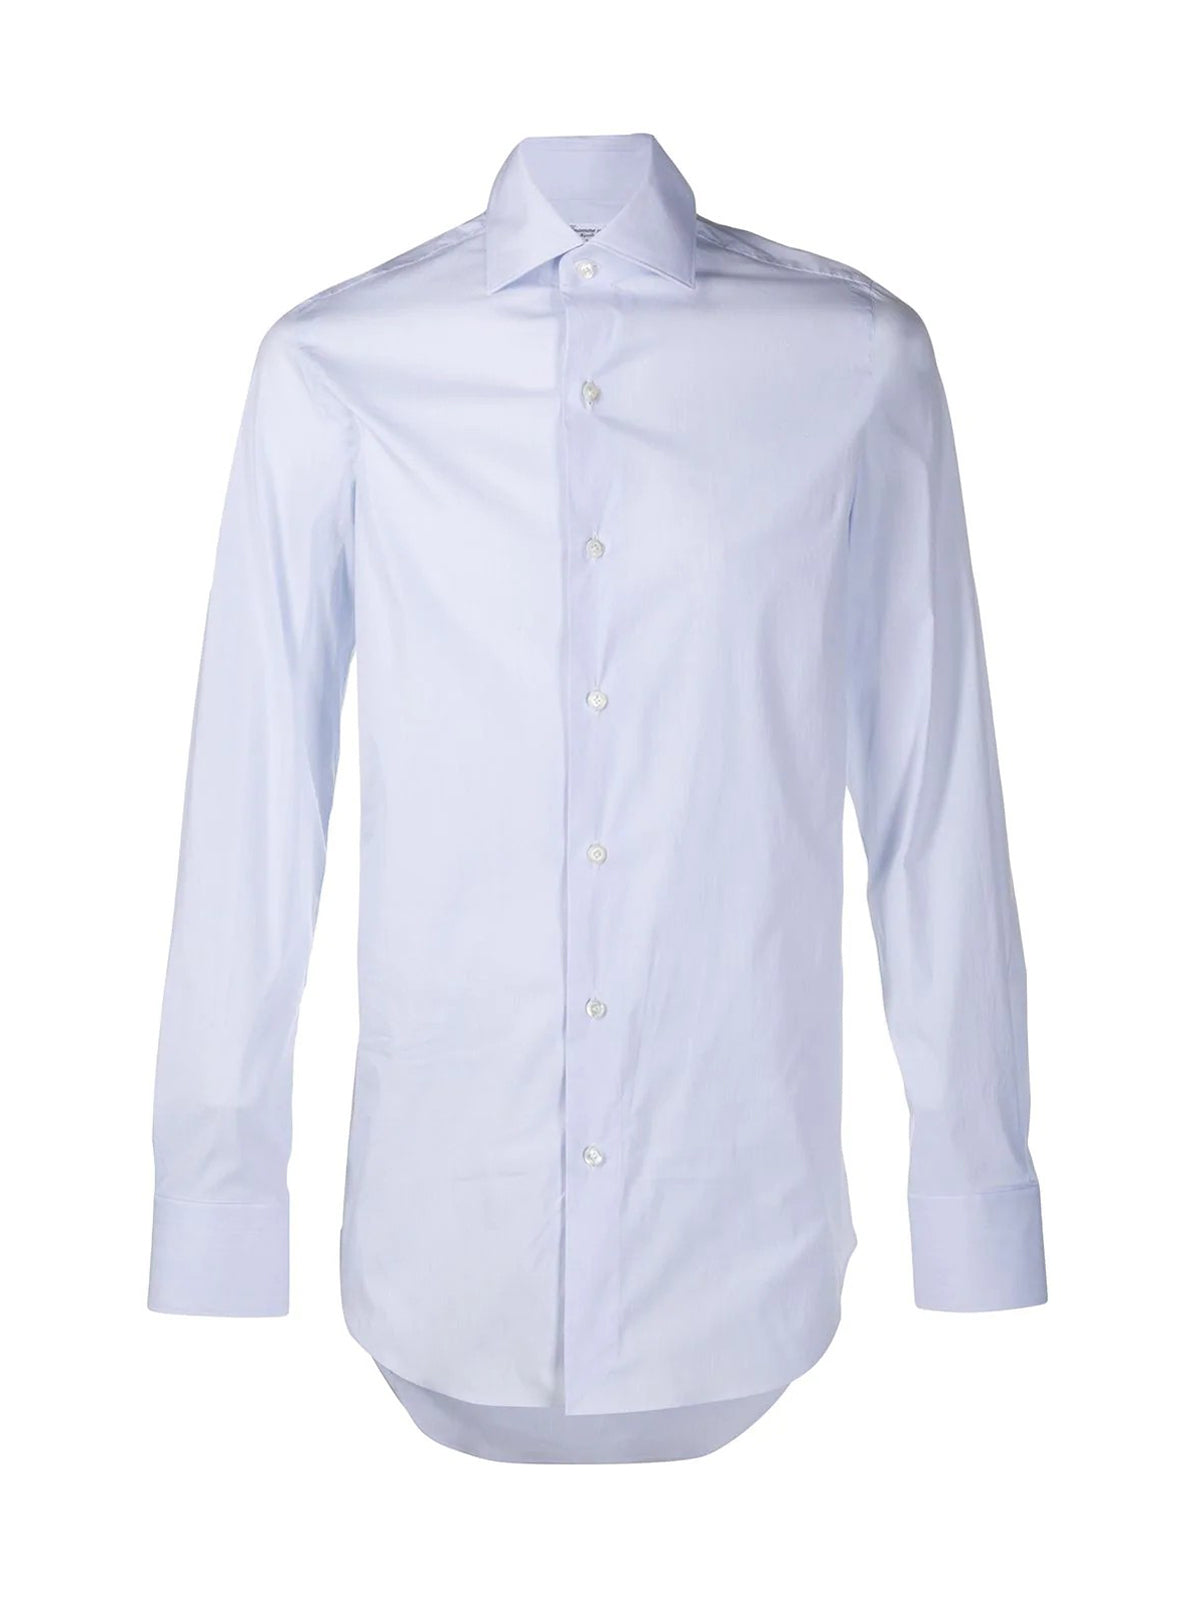 plain button shirt